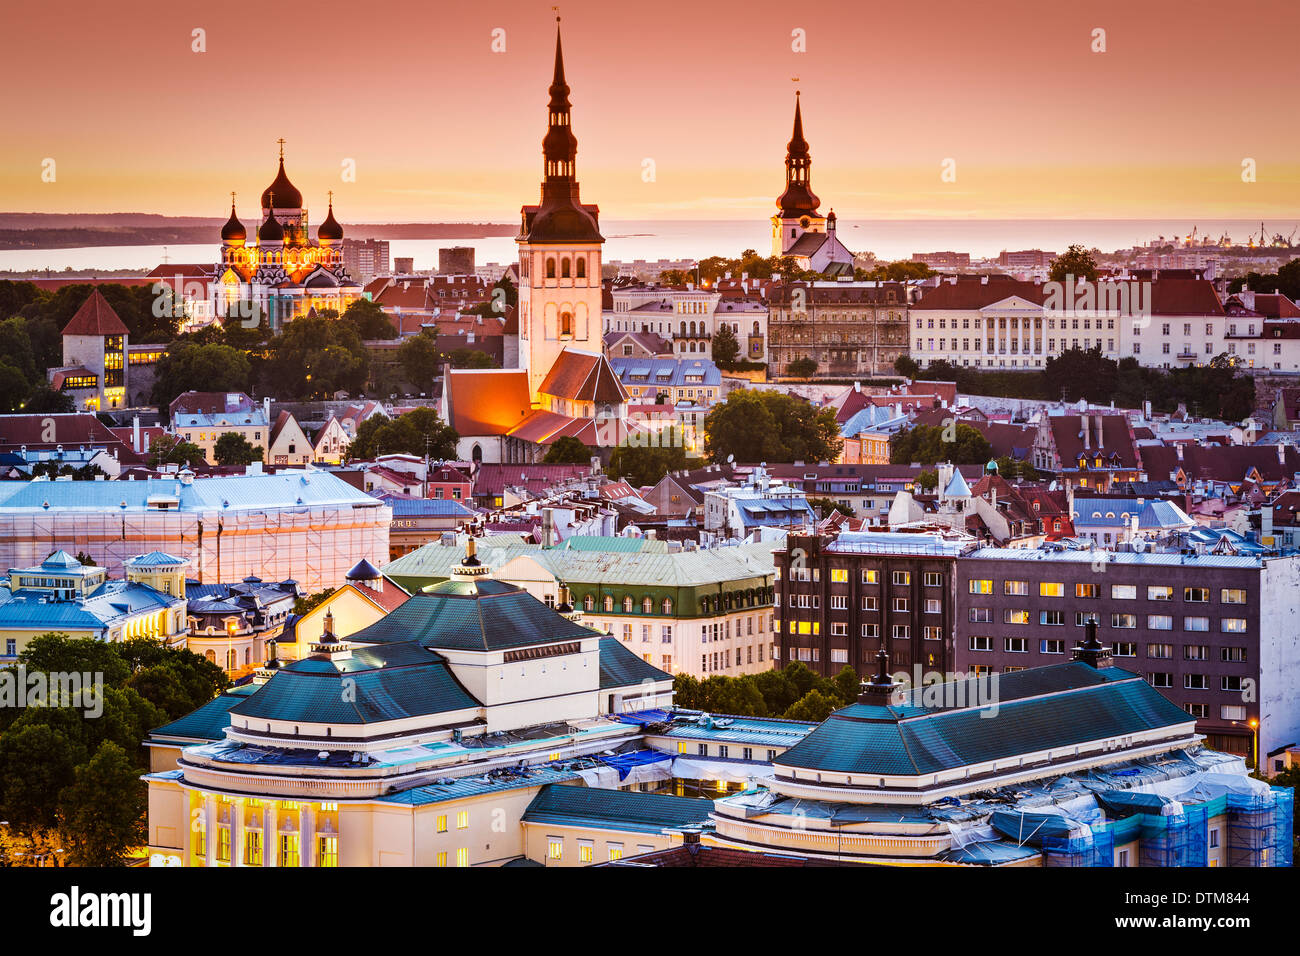 Tallinn, Estonia old city view. - Stock Image